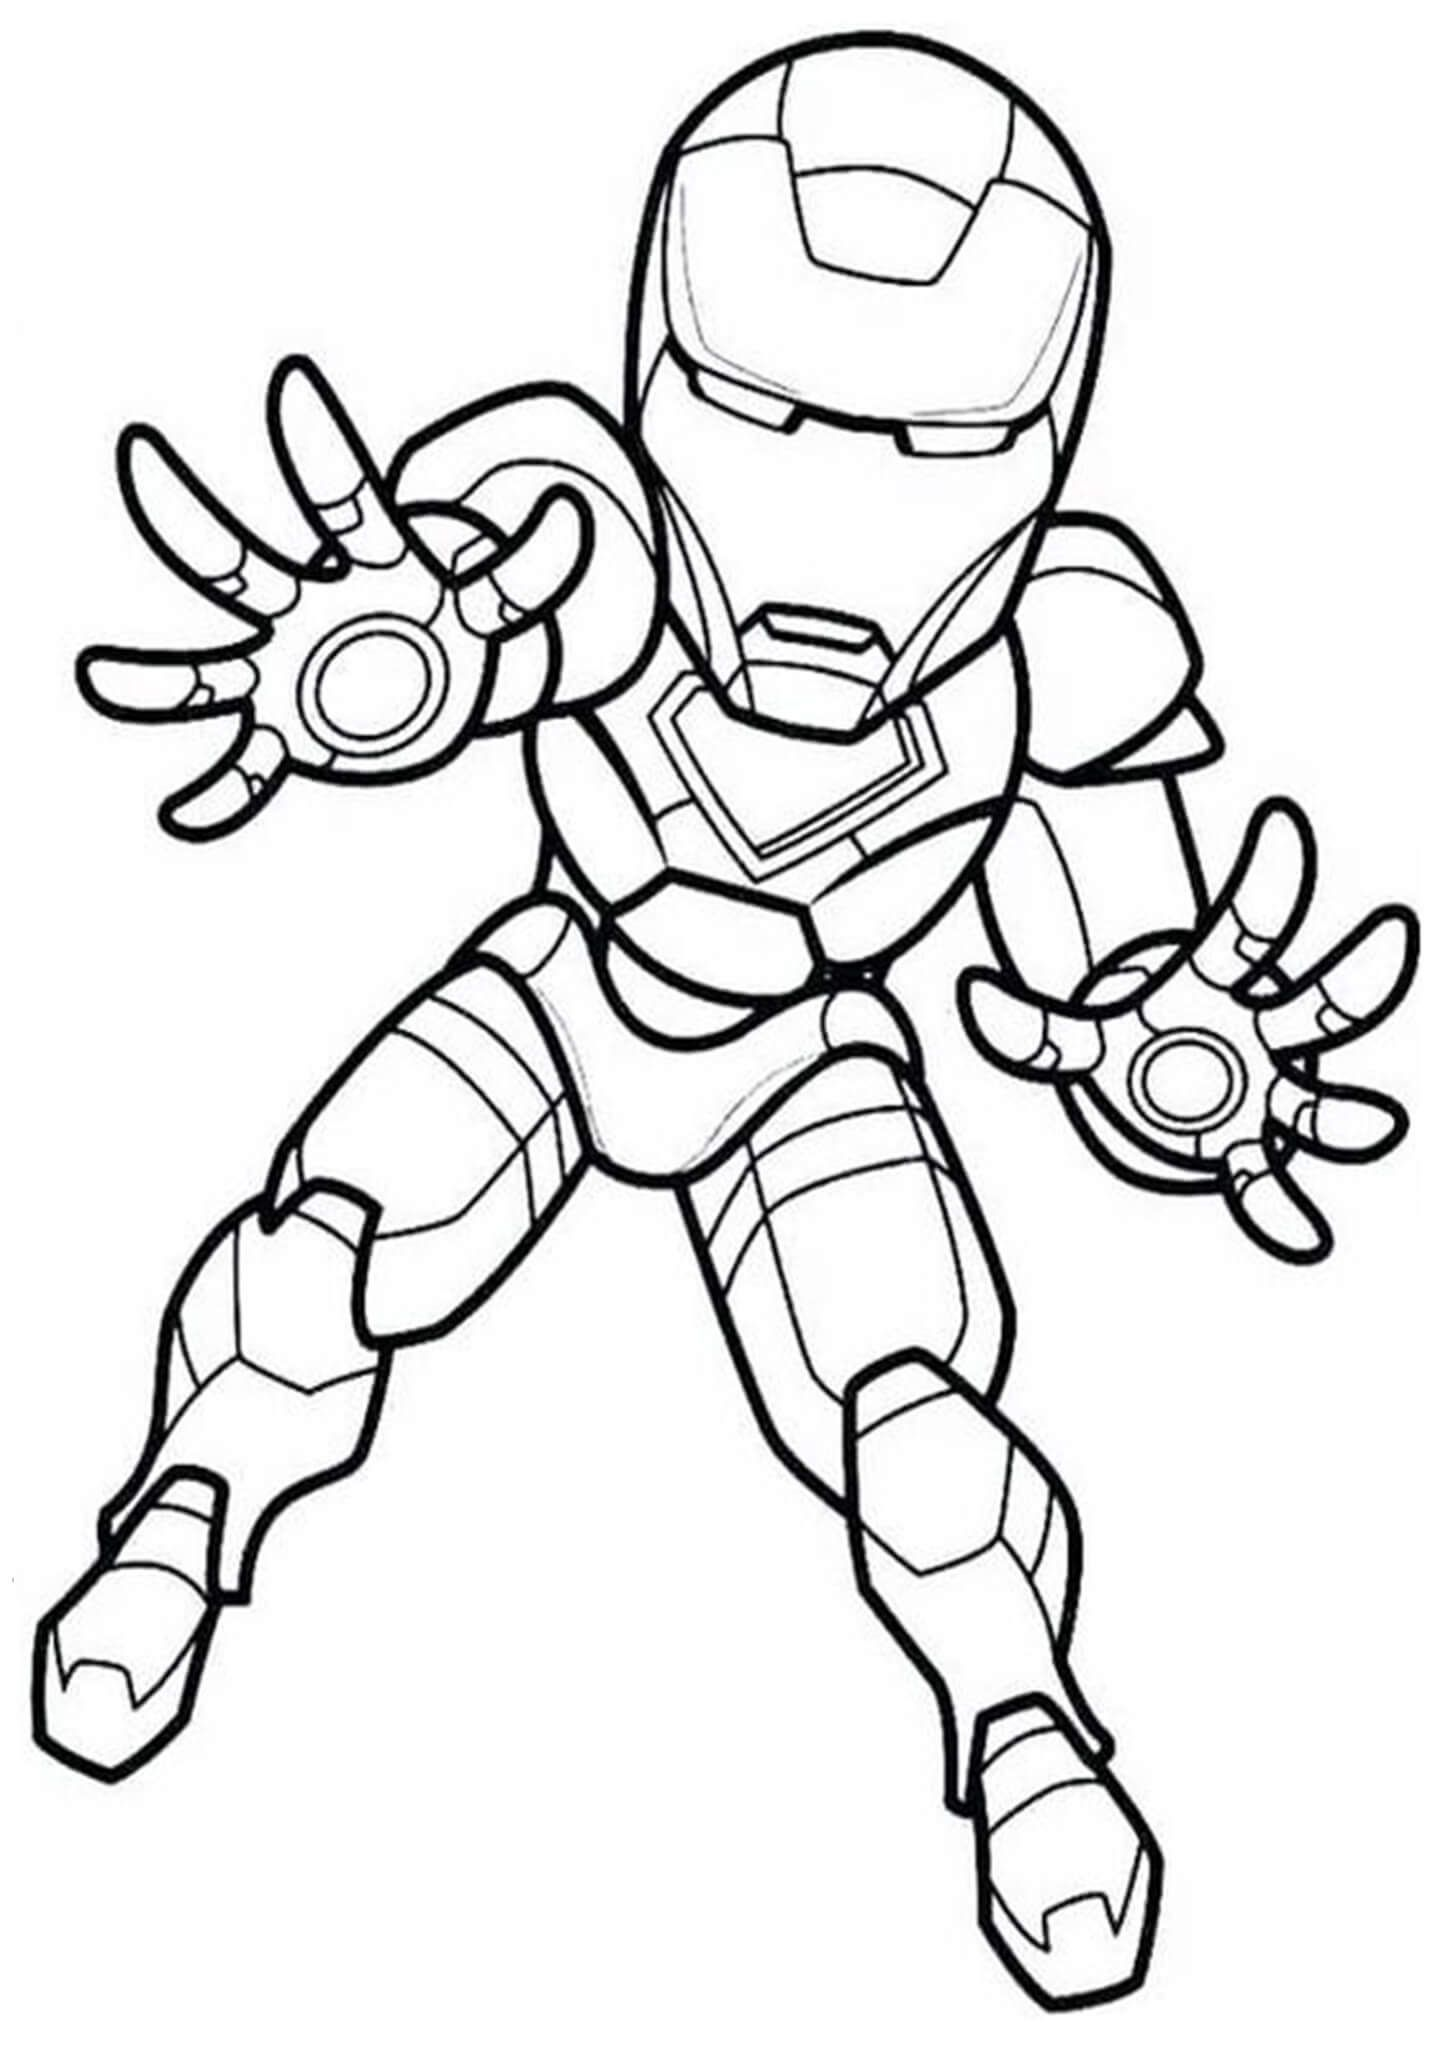 Free Easy To Print Iron Man Coloring Pages Lego Coloring Pages Avengers Coloring Pages Cartoon Coloring Pages